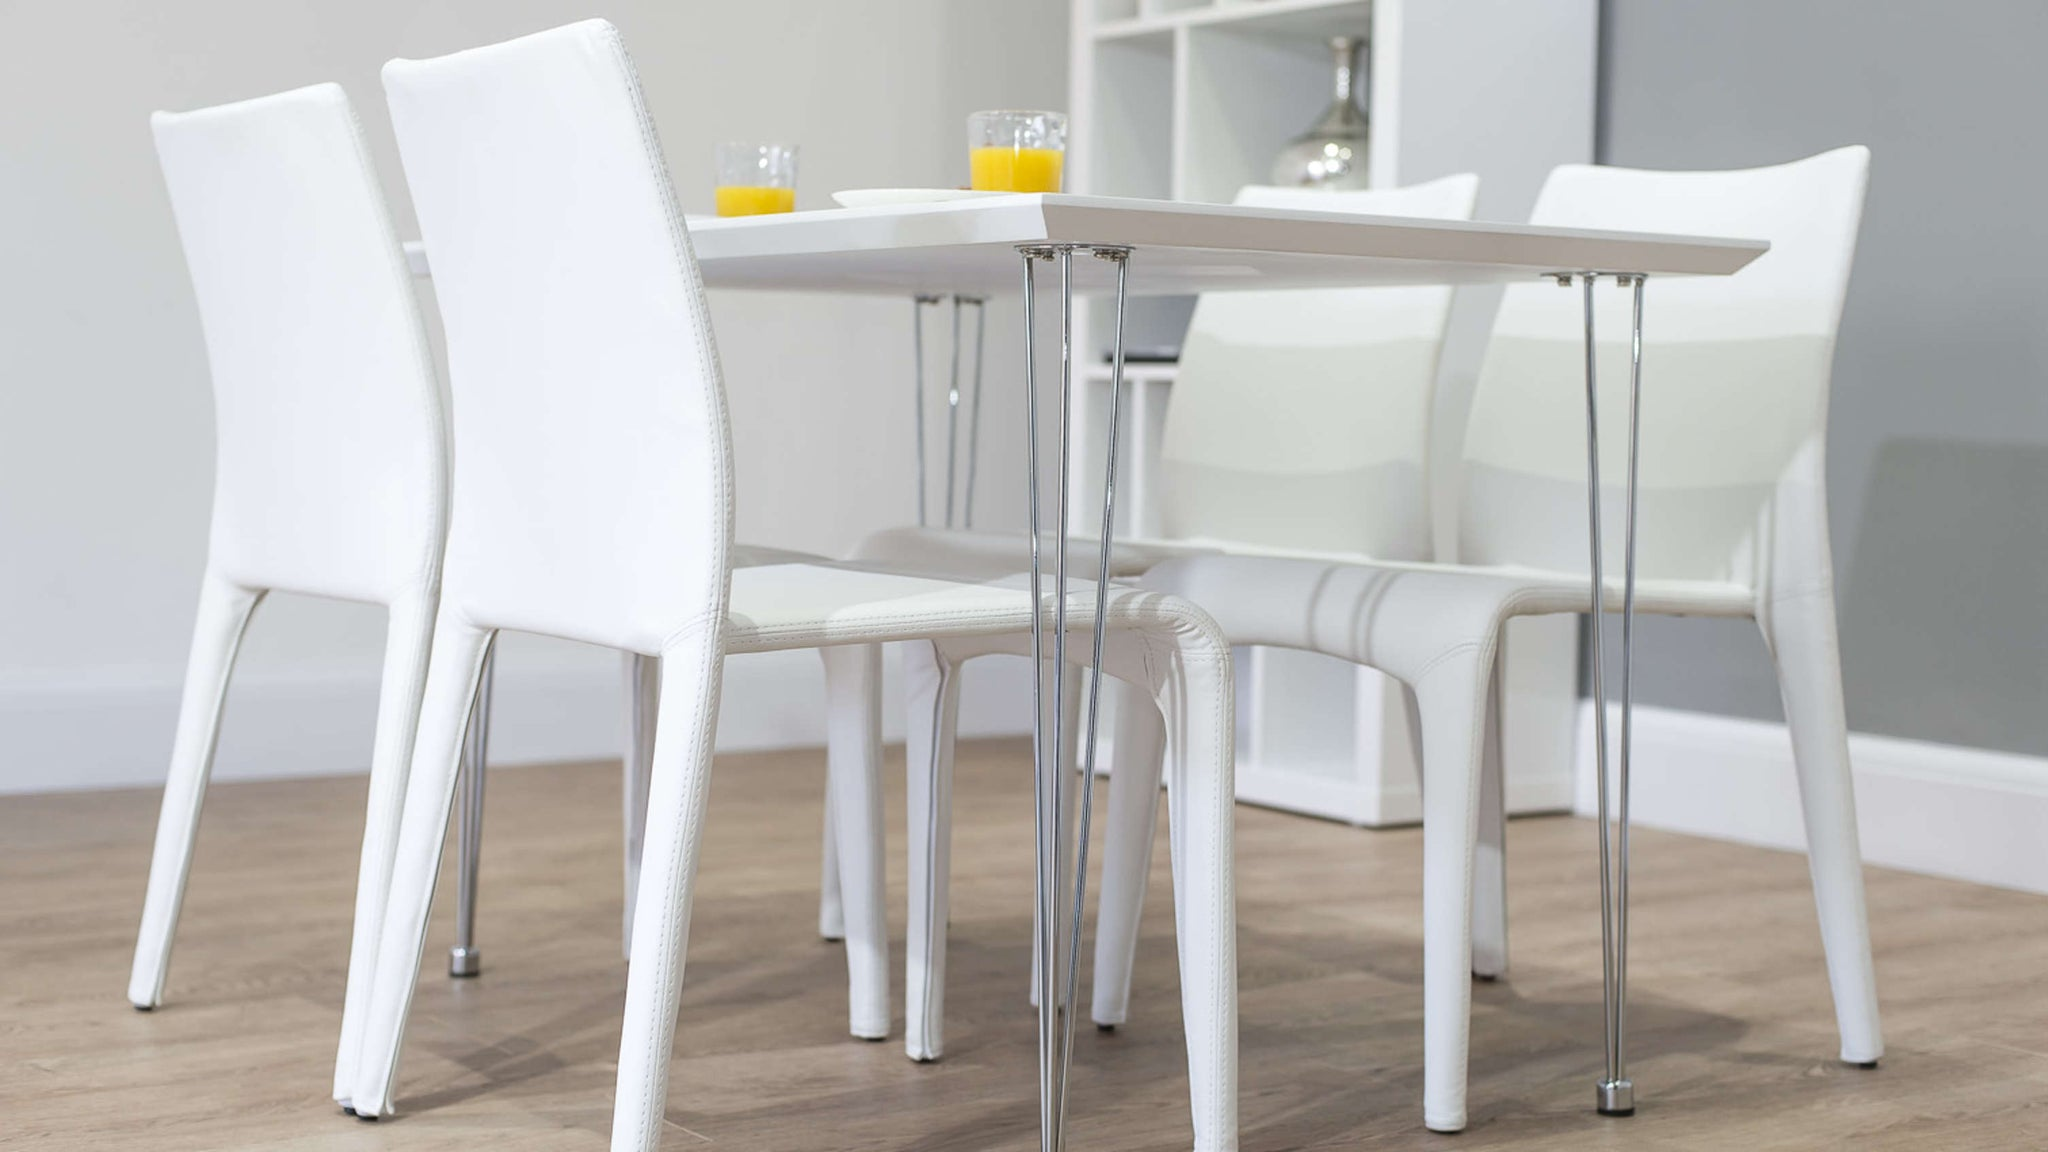 Stylish Chrome Based Dining Table and Chairs